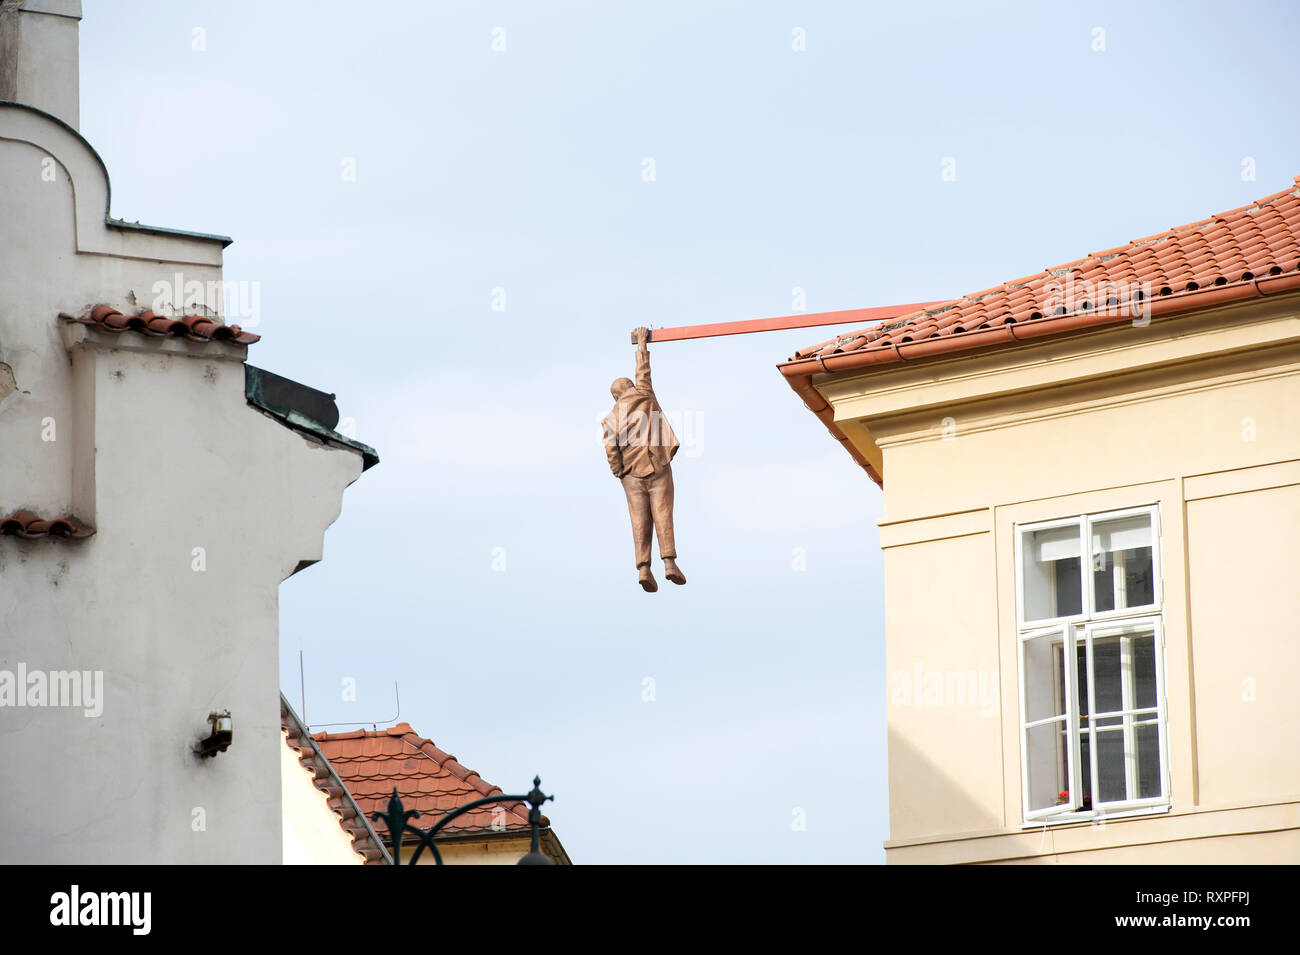 The 7 foot Sigmund Freud statue by artist David Cerny hanging above the streets of Old Town Prague (Praha), Czech Republic. - Stock Image